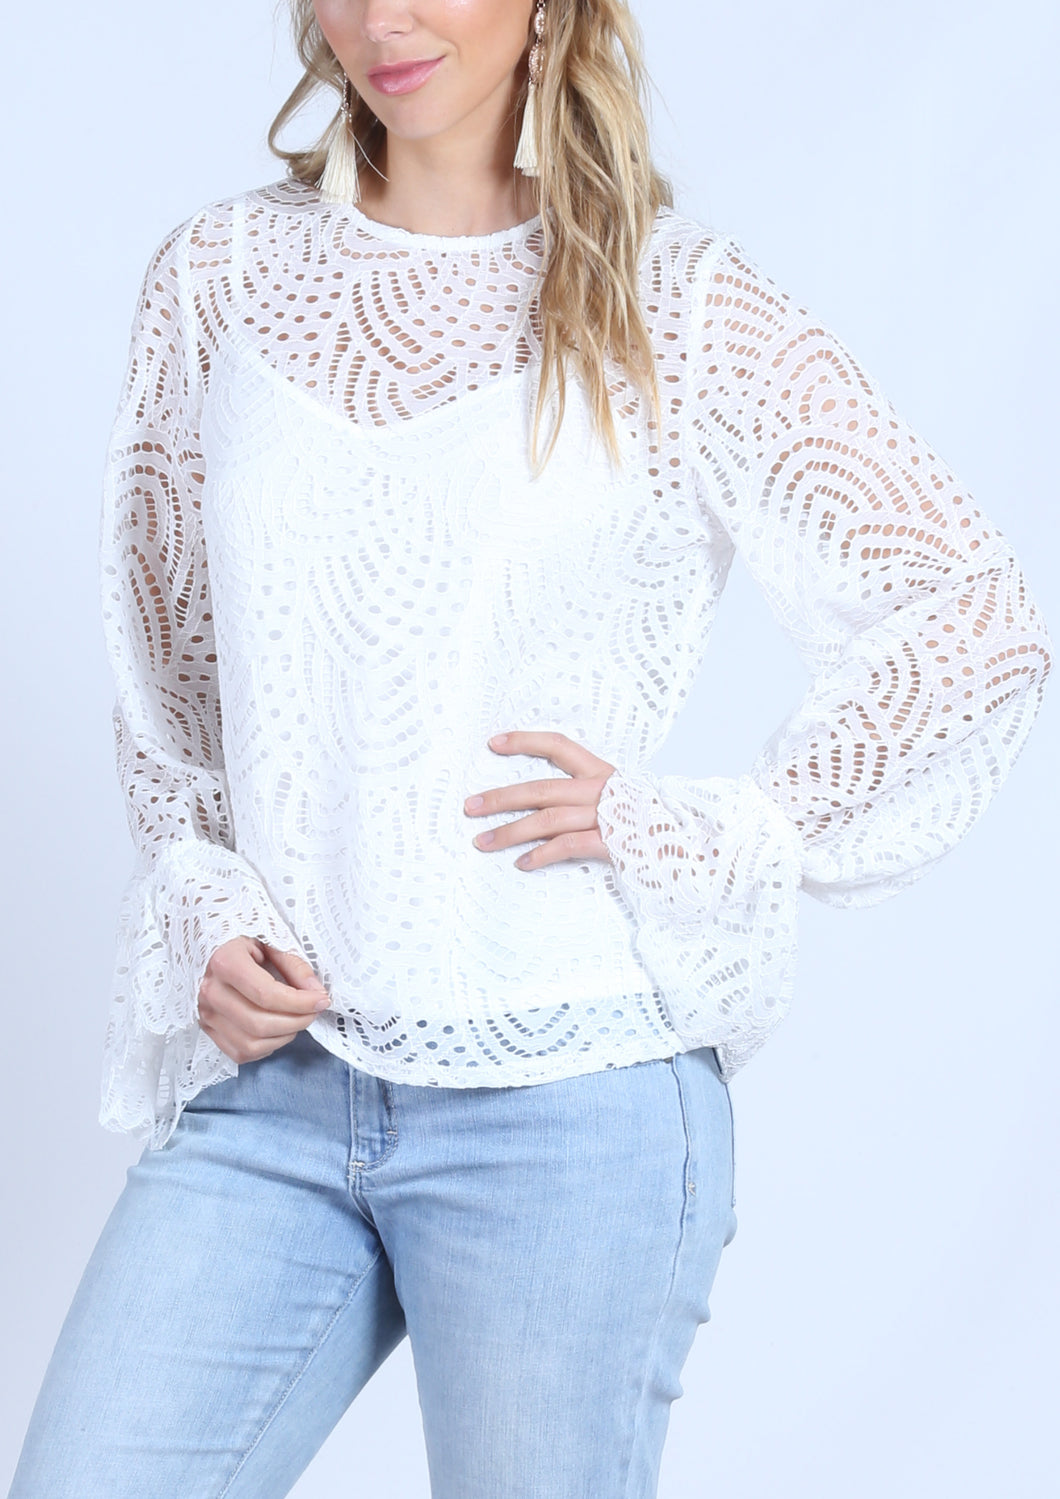 YW2119-1SS Burnout Mesh Top (Pack)